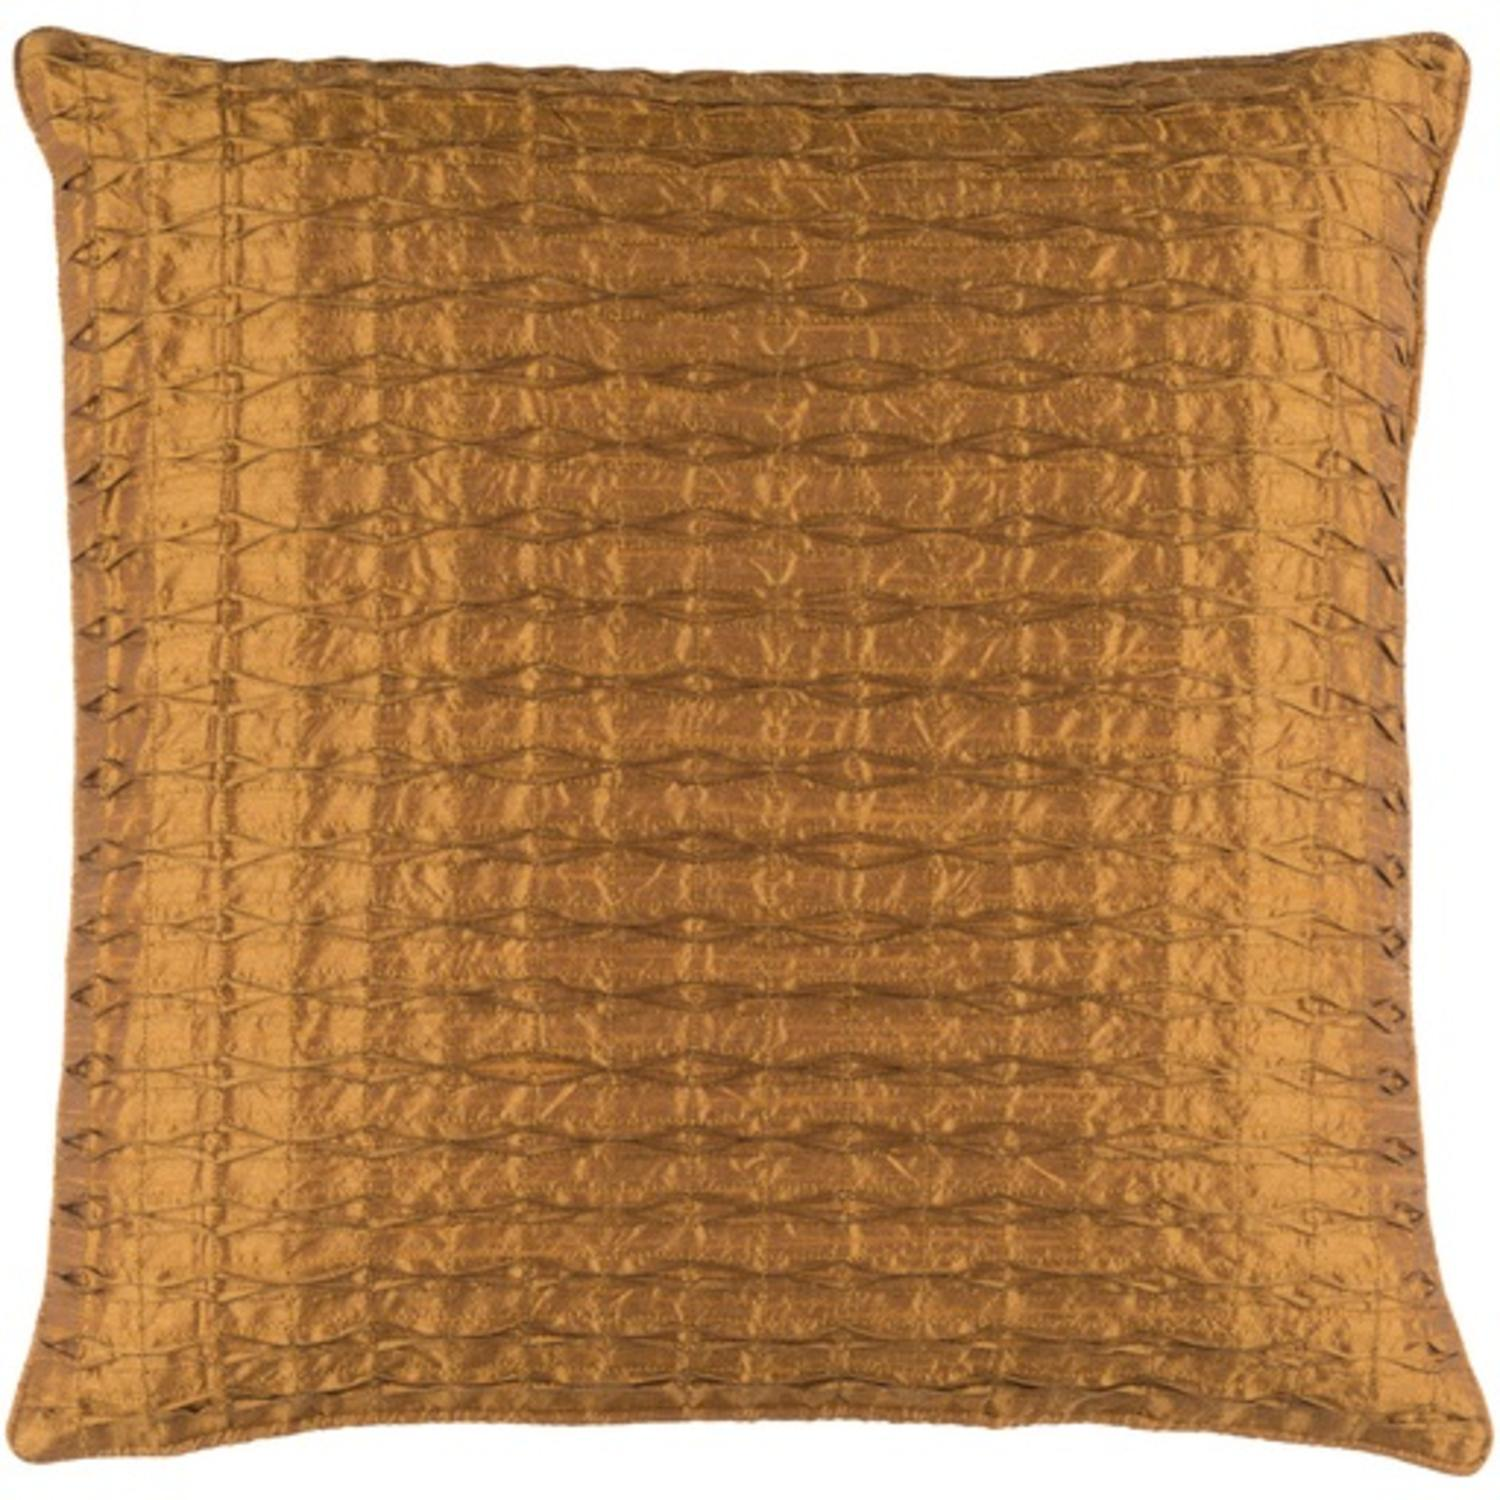 "18"" Decorative Golden Quilted Linens Throw Pillow"